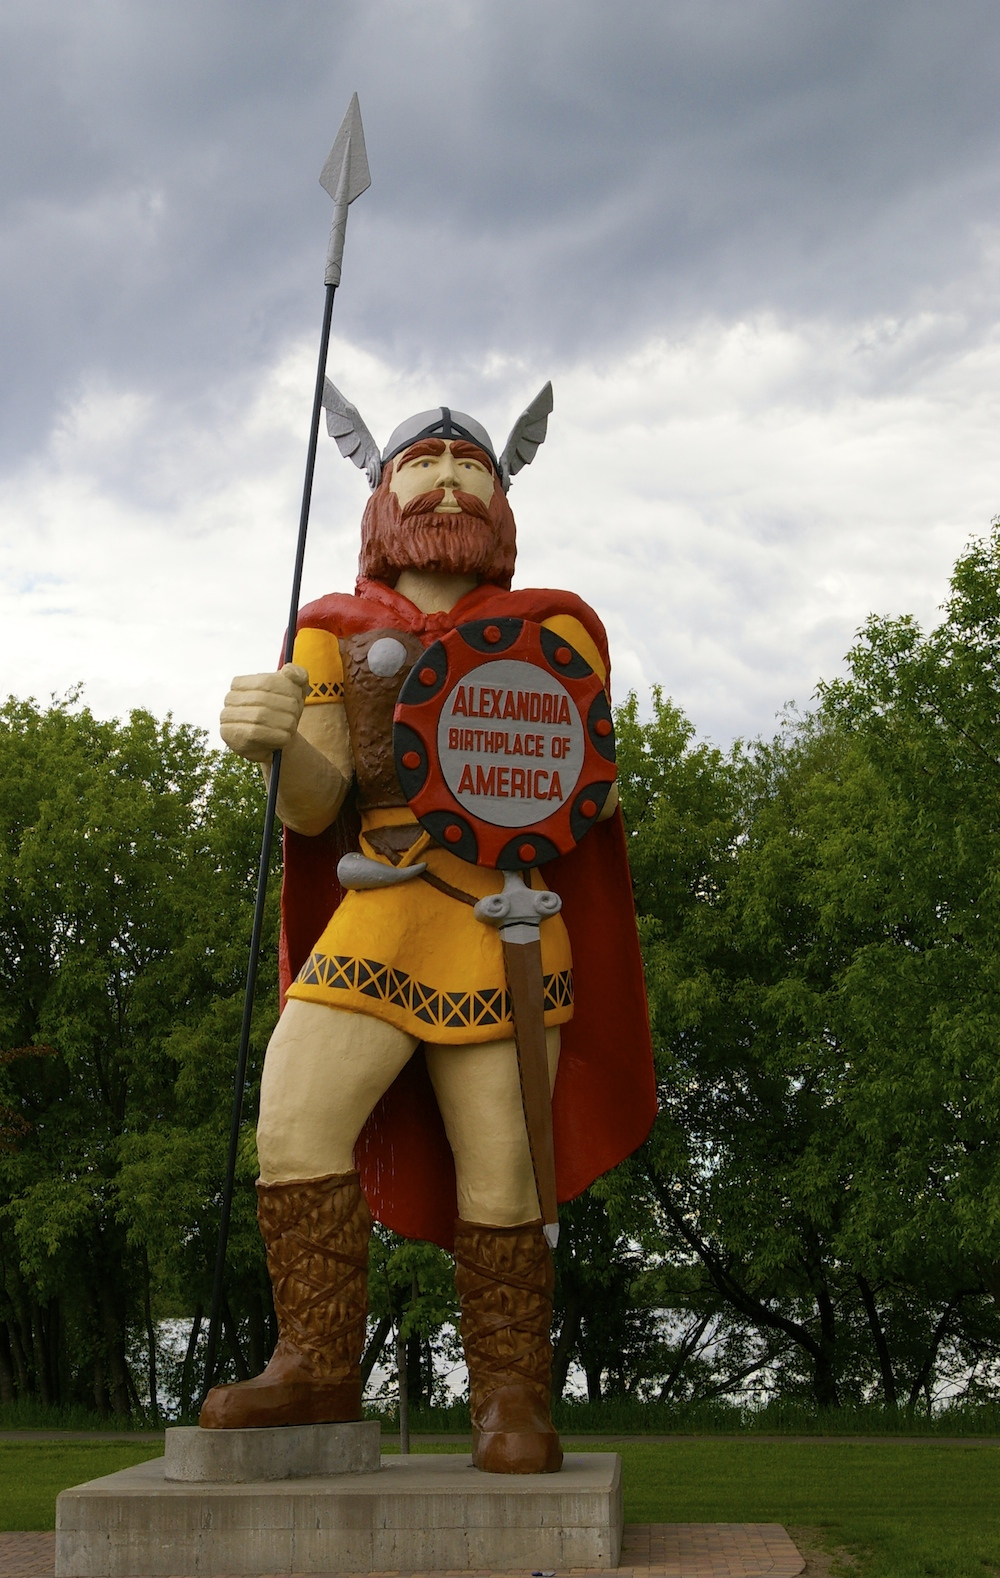 Statue of Big Ole, America's Biggest Viking in Alexandria, Minnesota